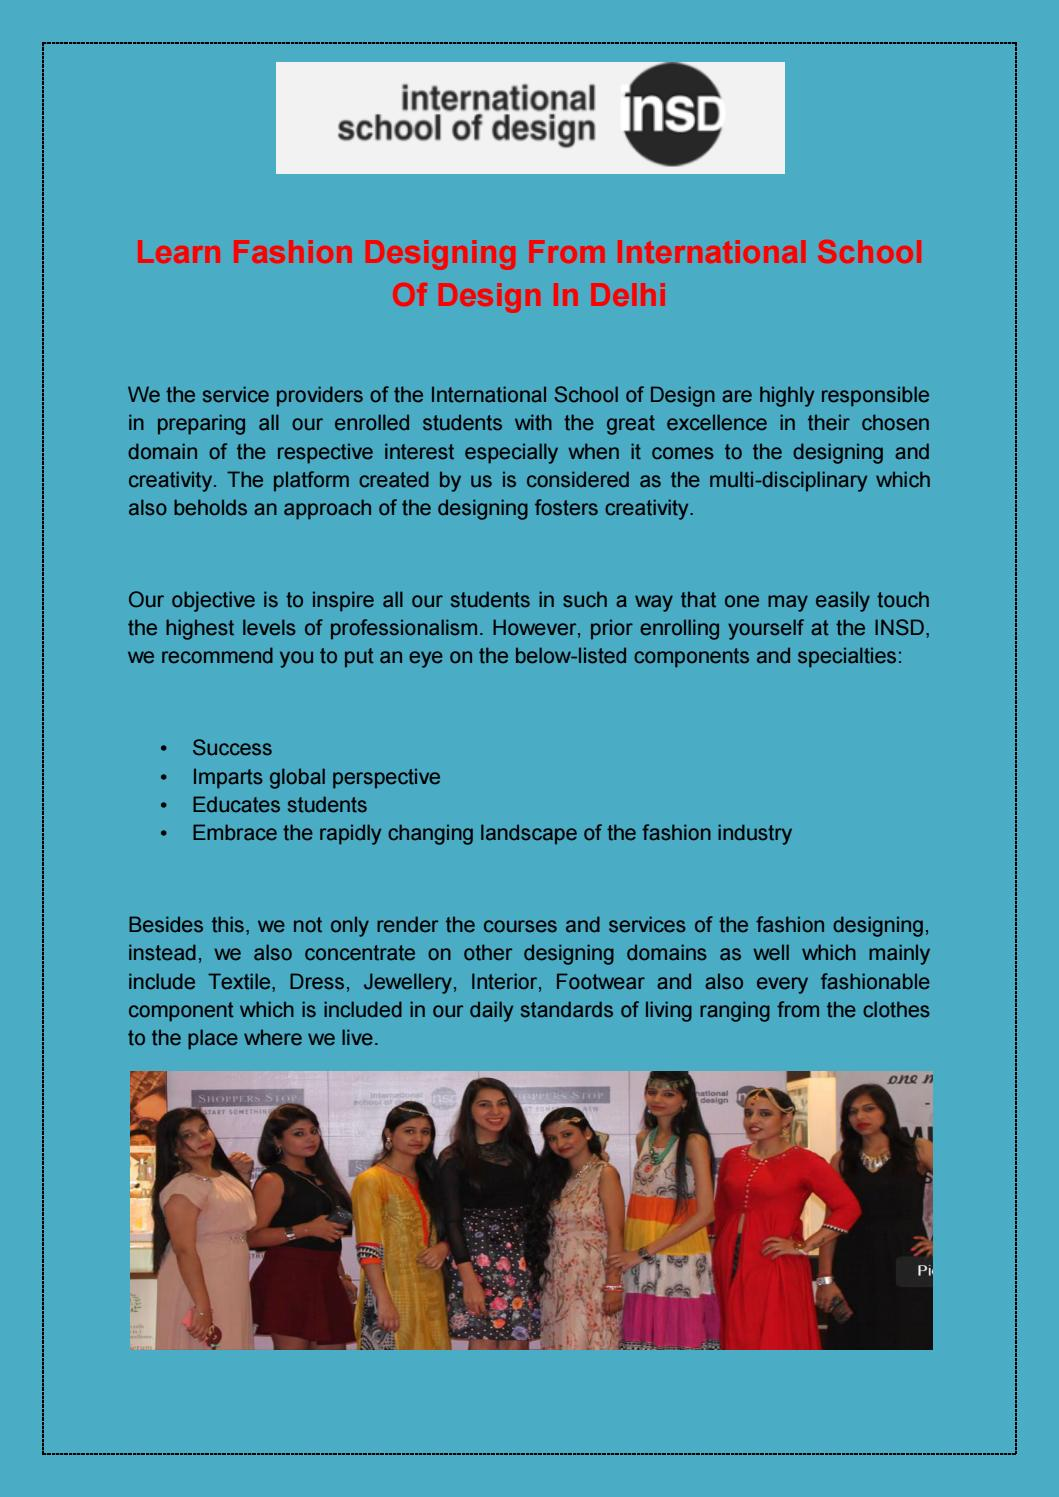 Learn Fashion Designing From International School Of Design In Delhi By Insd Paschim Vihar Issuu